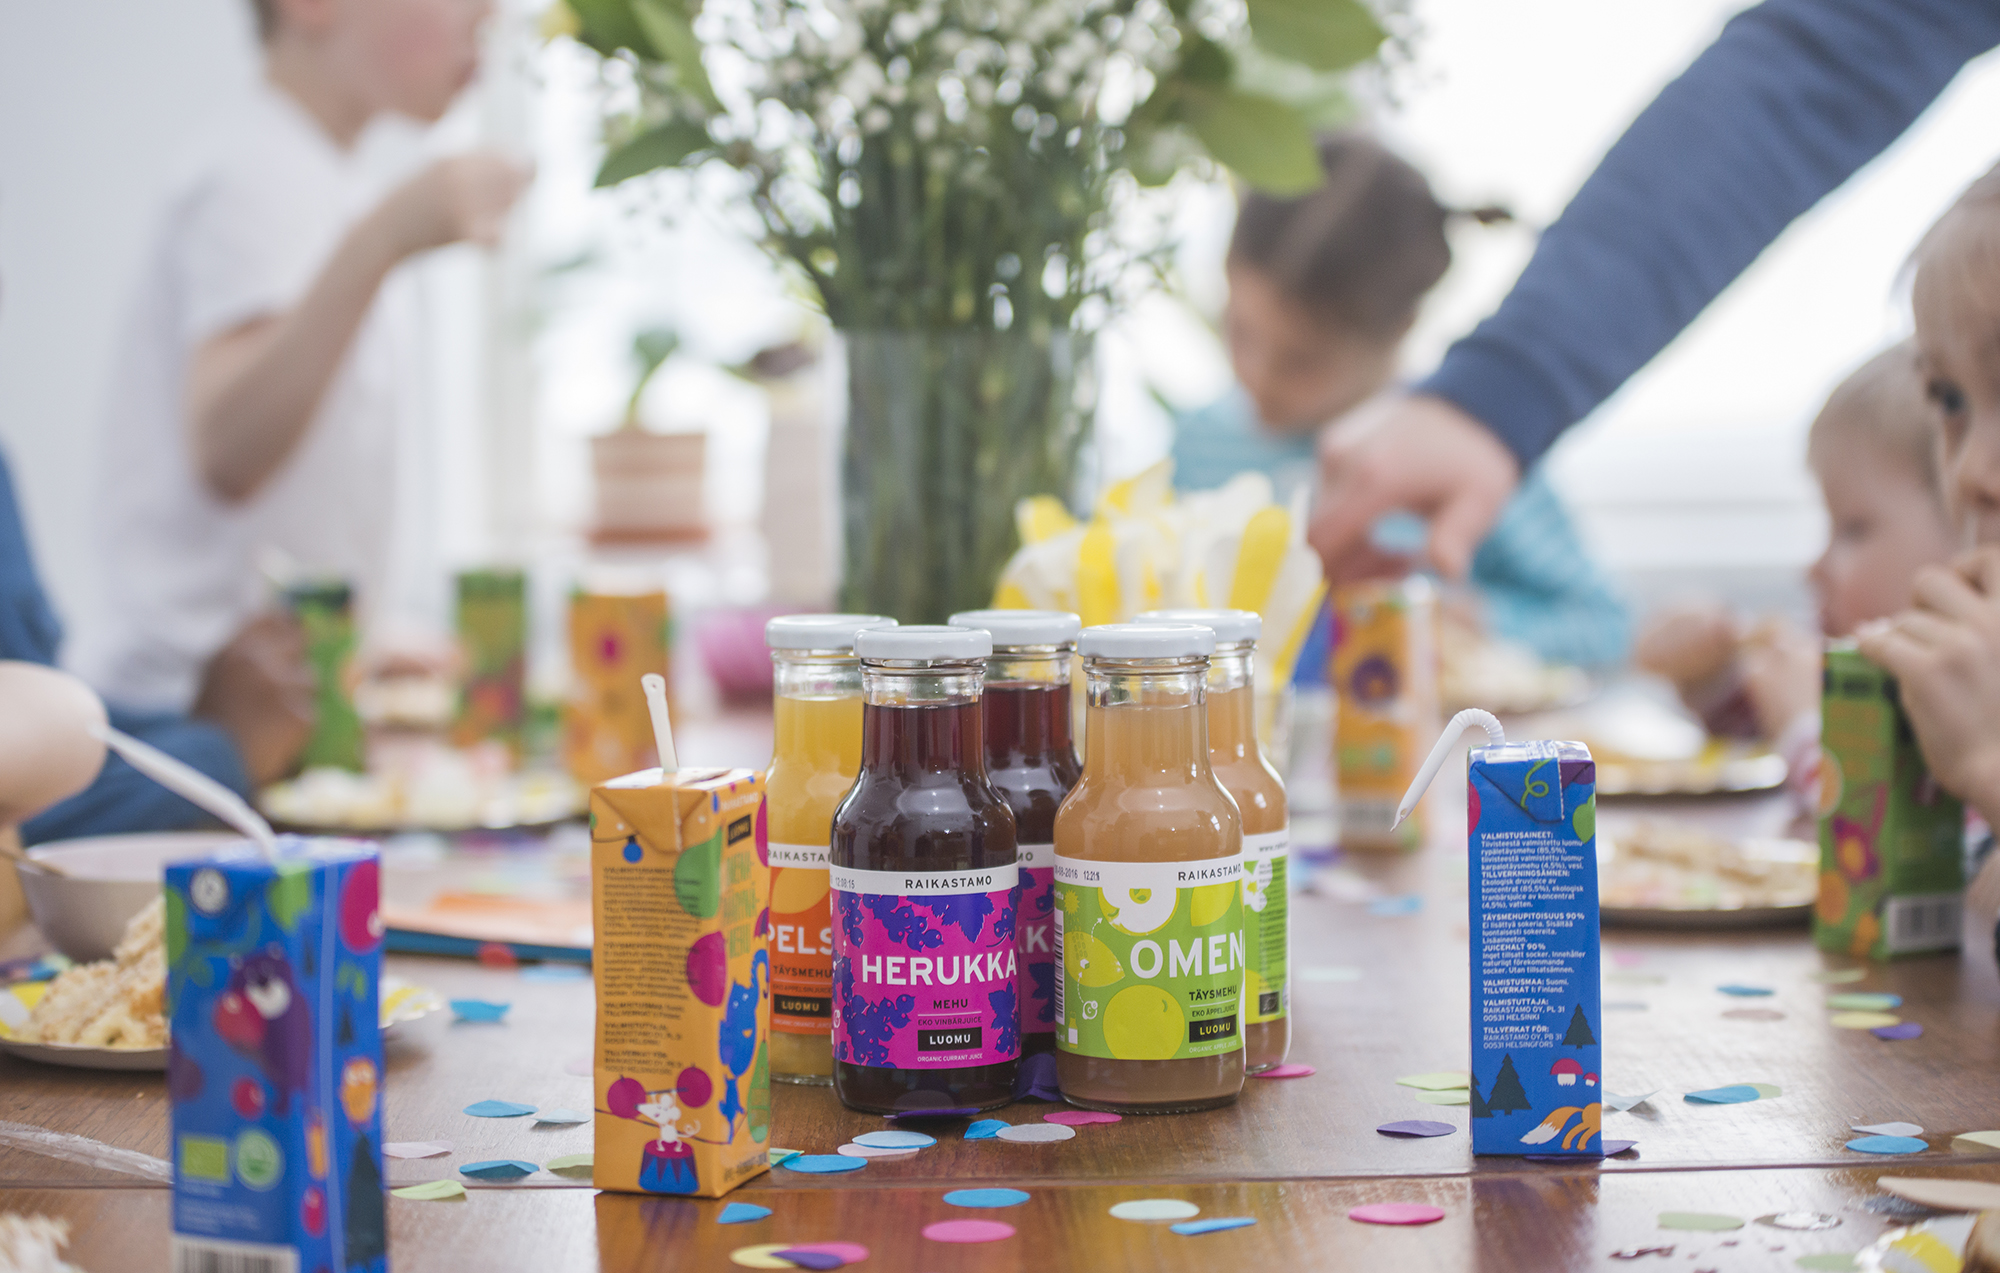 The market for organic fruit juices in the Nordic region is on fire